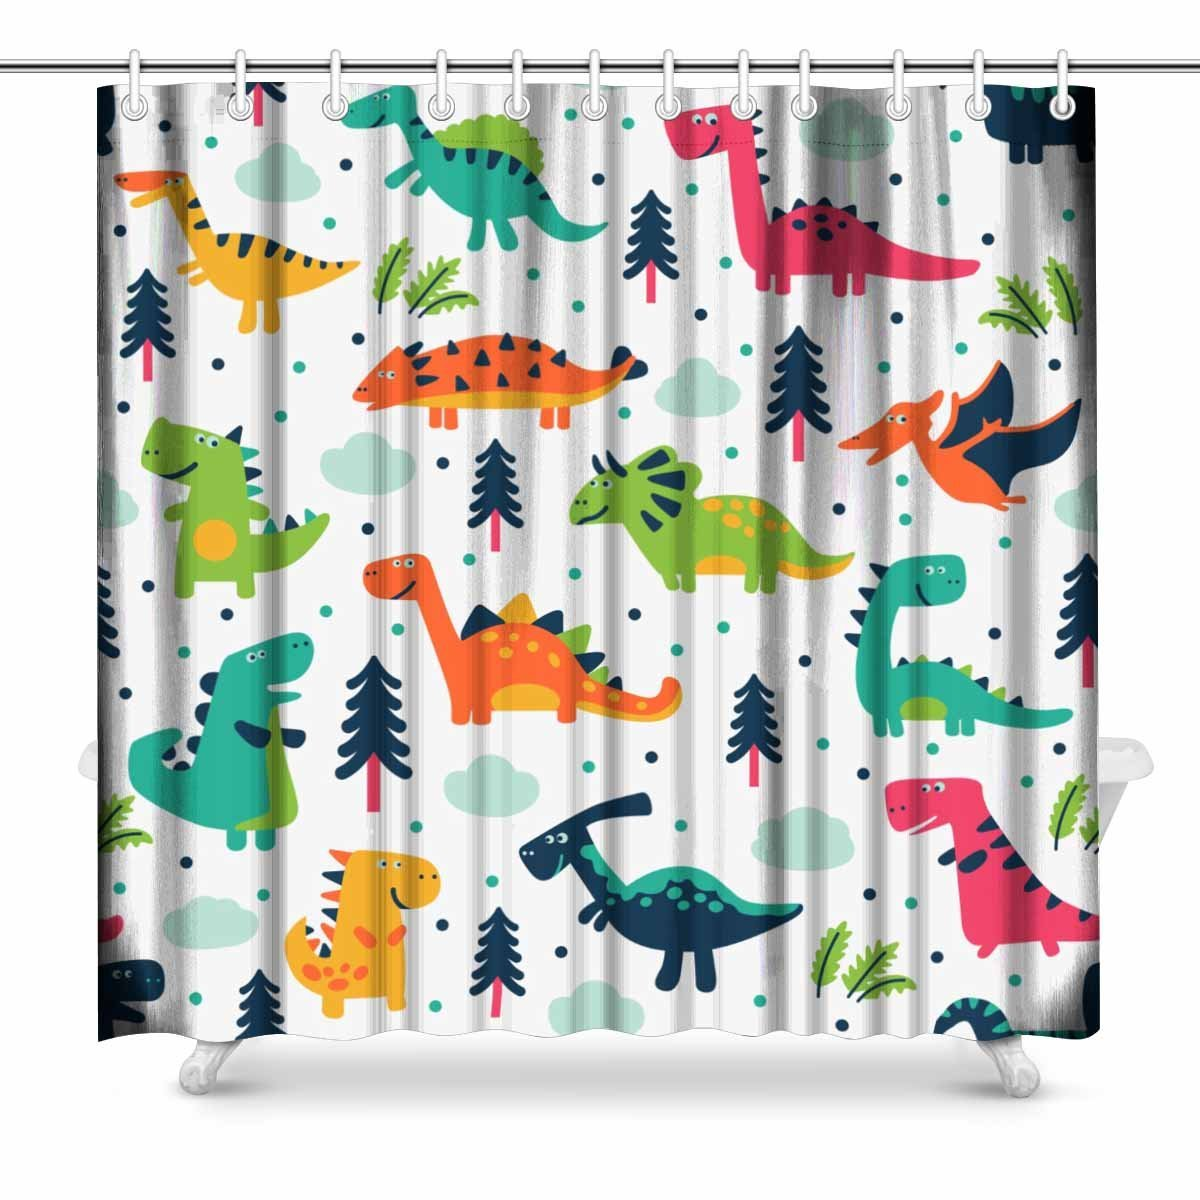 Aplysia Adorable With Funny Dinosaurs In Cartoon Bathroom Accessories Shower Curtain With Hooks 72 Inches In Shower Curtains From Home Garden On